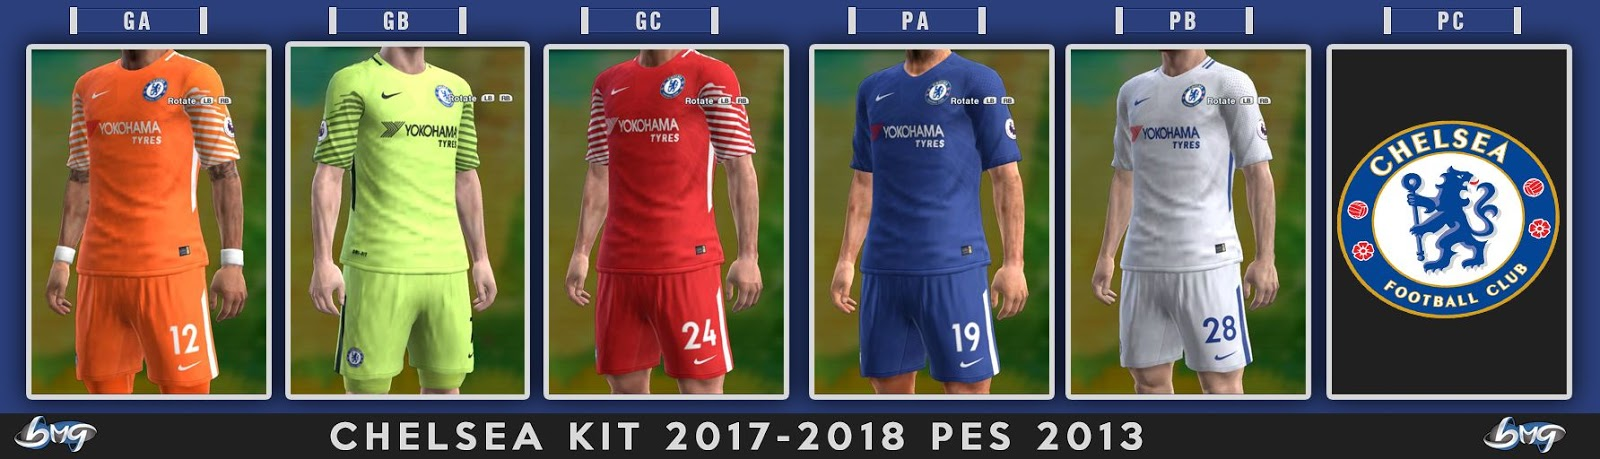 49b83f0a4 PES 2013 Chelsea Full GDB Kits 2017-2018. CREDITS: BMG Kitmaker DOWNLOAD